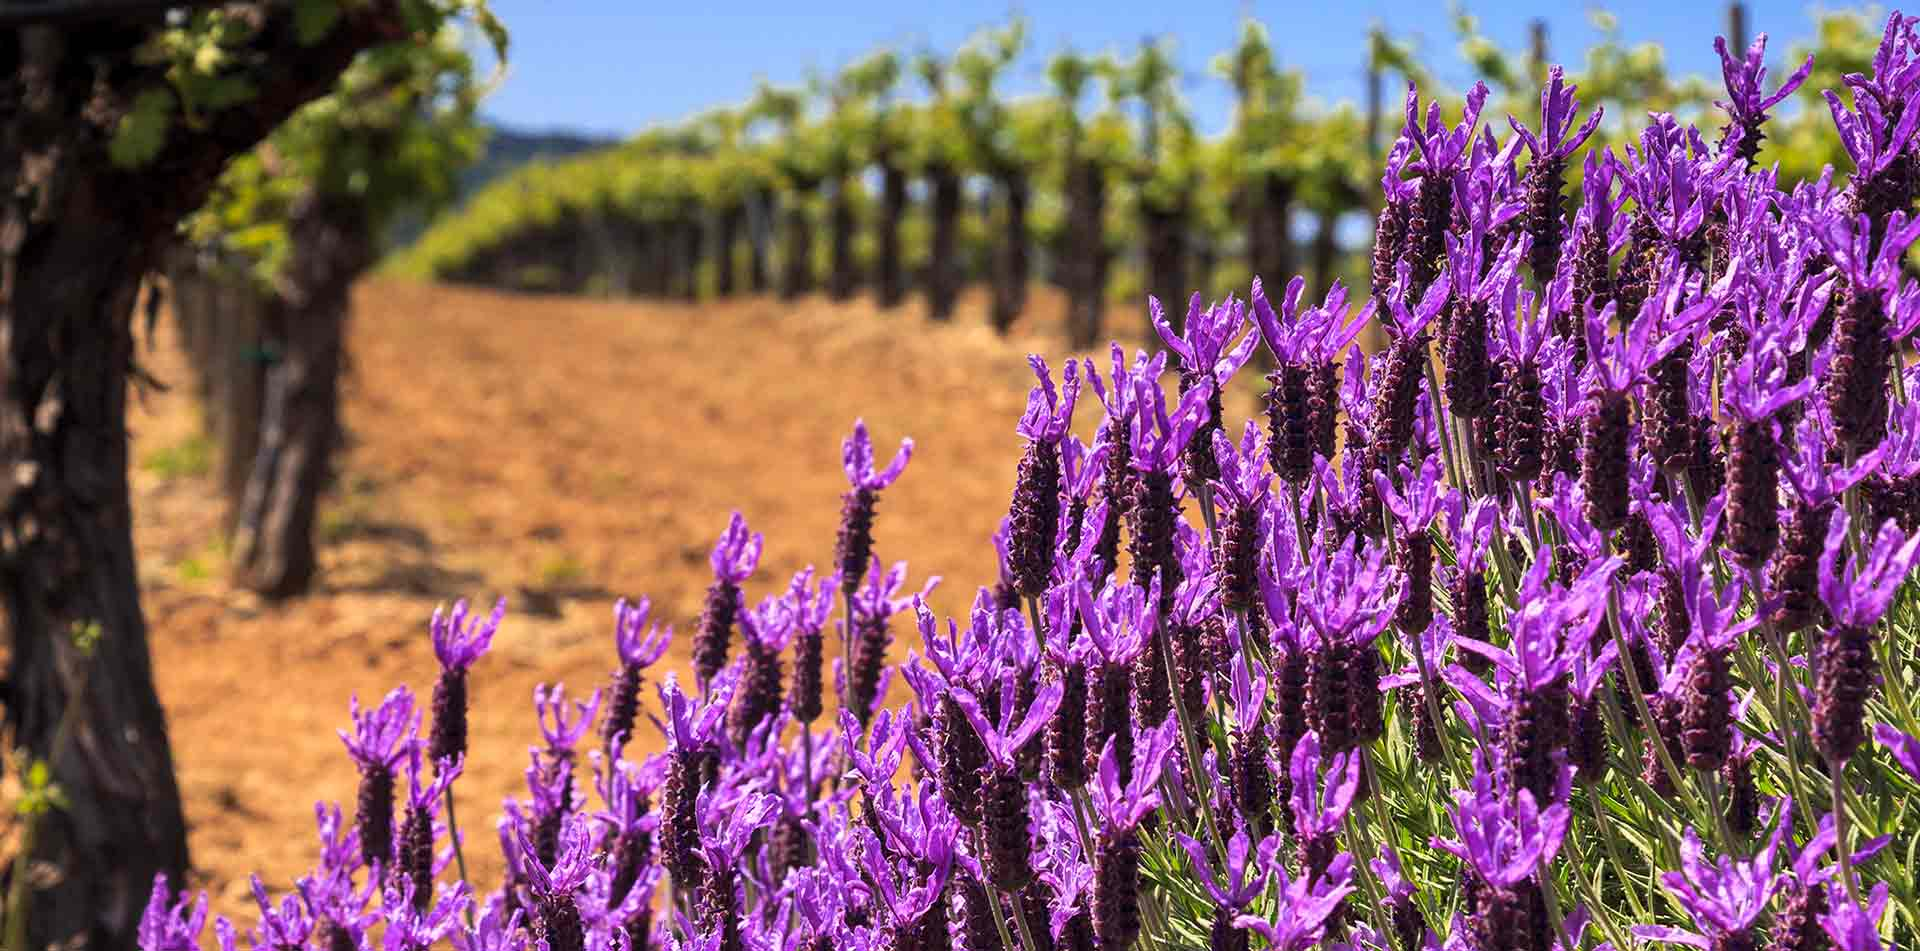 North America United States California Napa Sonoma vineyard purple lavender herb food wine - luxury vacation destinations